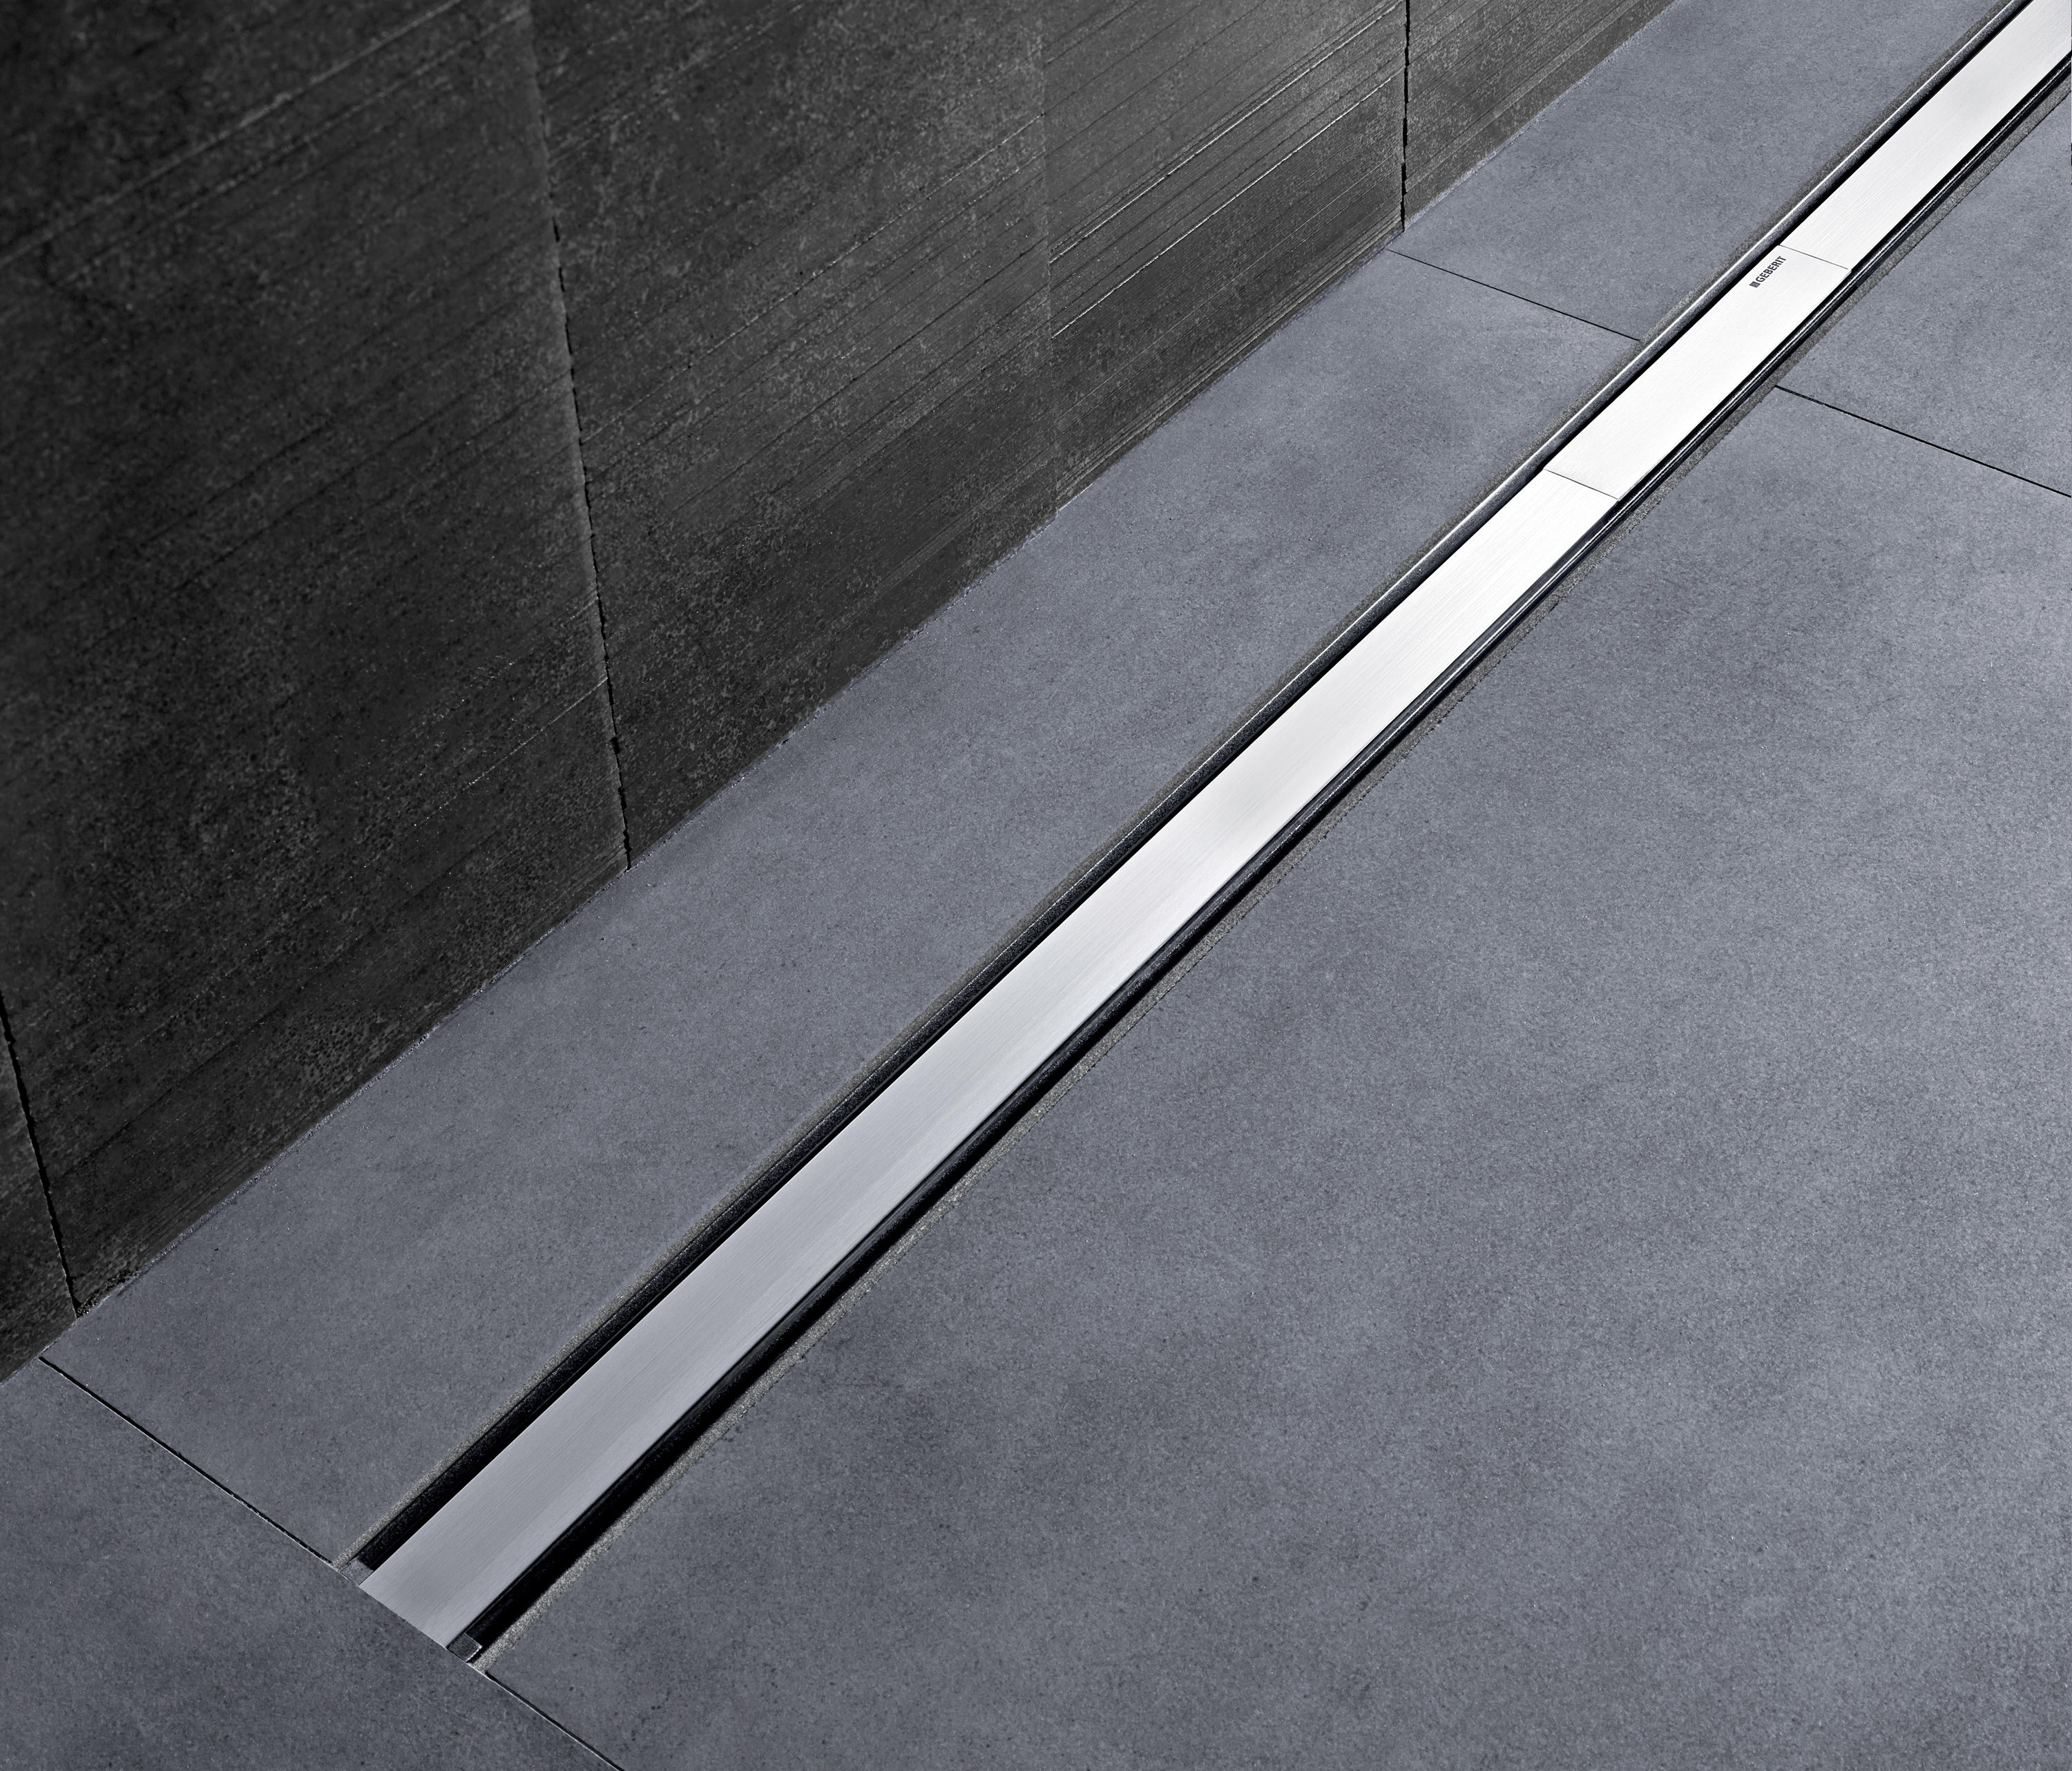 geberit drains